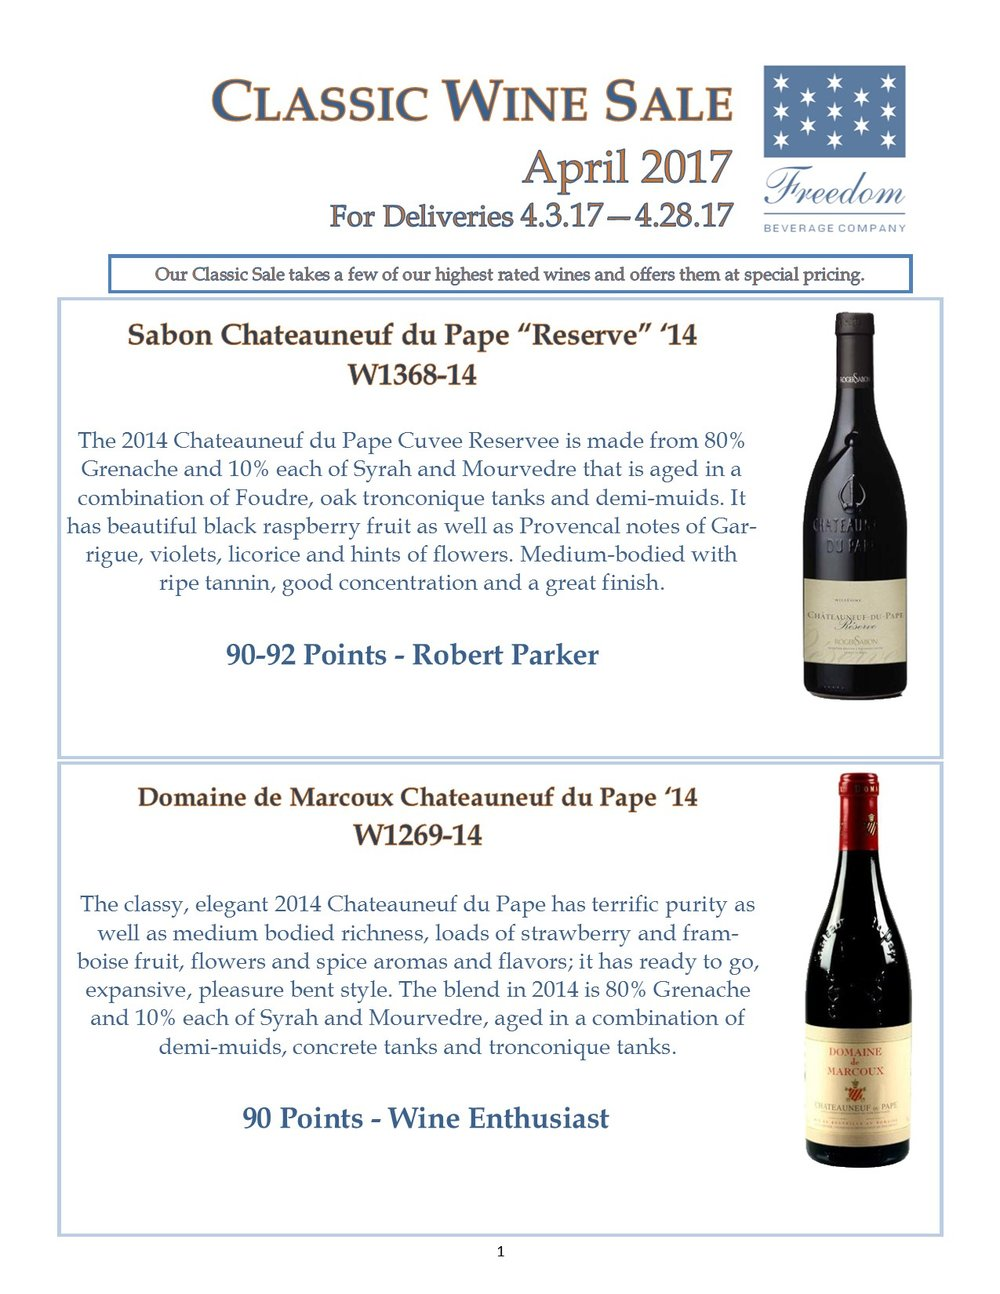 Classic Wine Sale April 2017.jpg